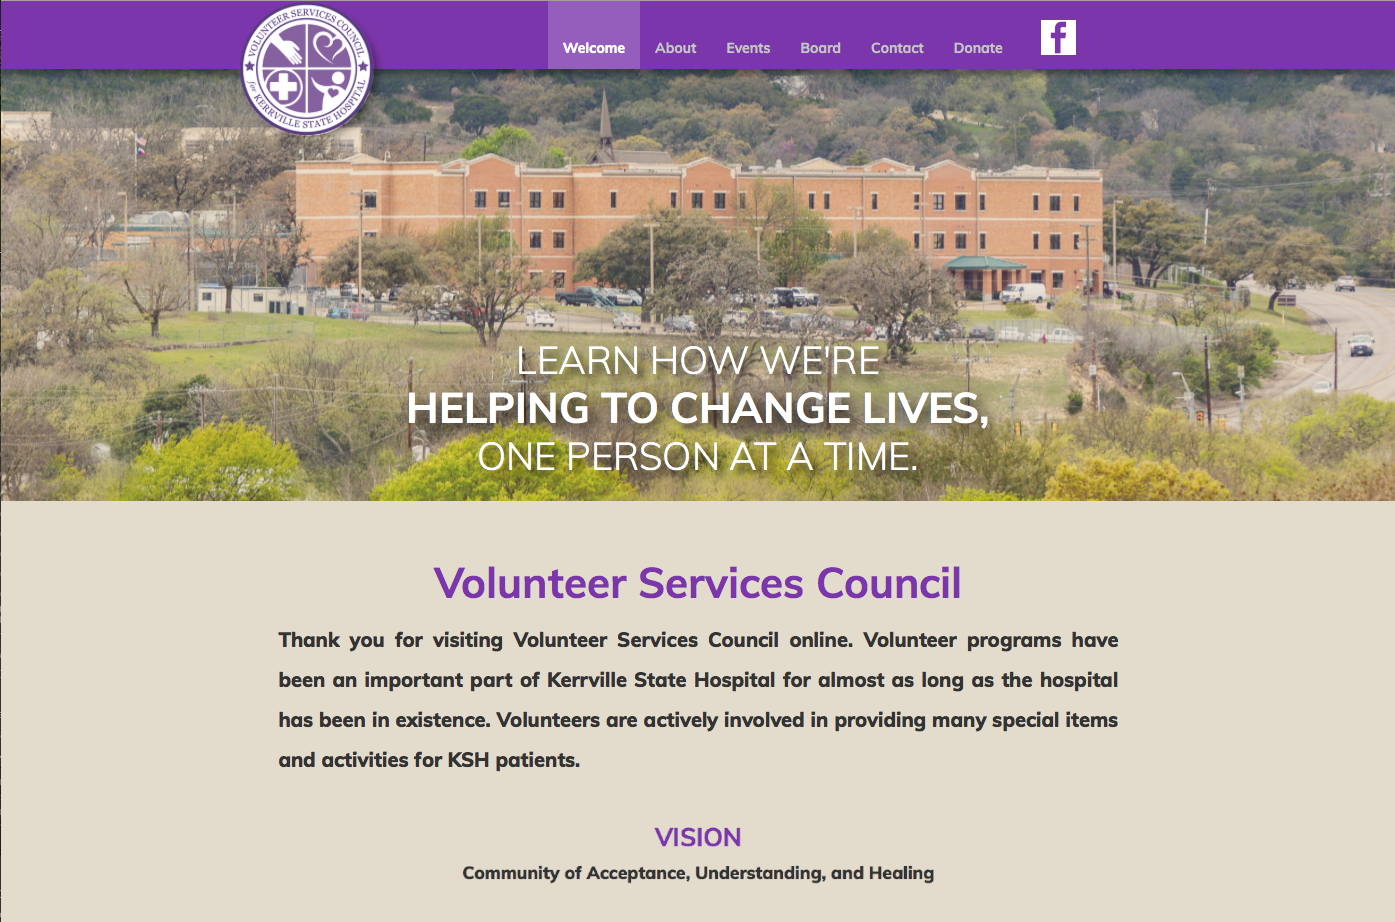 Volunteer Services Council